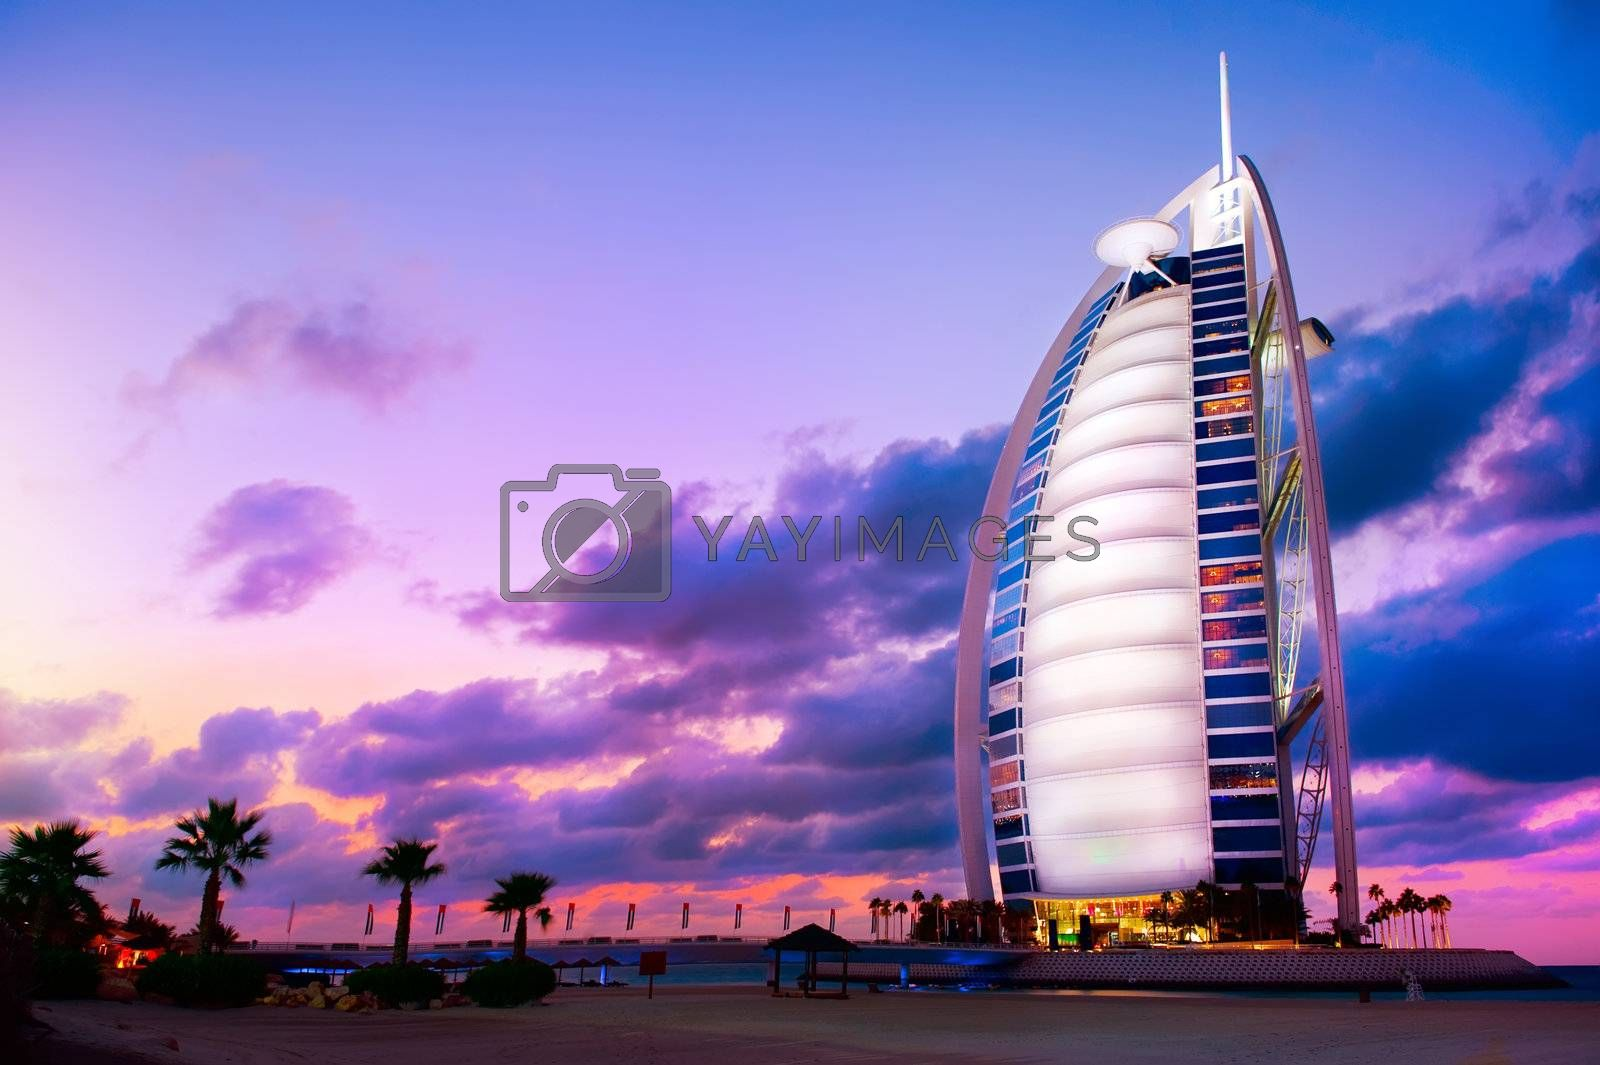 DUBAI, UAE - NOVEMBER 27: Burj Al Arab hotel on Nov 27, 2011 in Dubai. Burj Al Arab is a luxury 5 stars hotel built on an artificial island in front of Jumeirah beach.